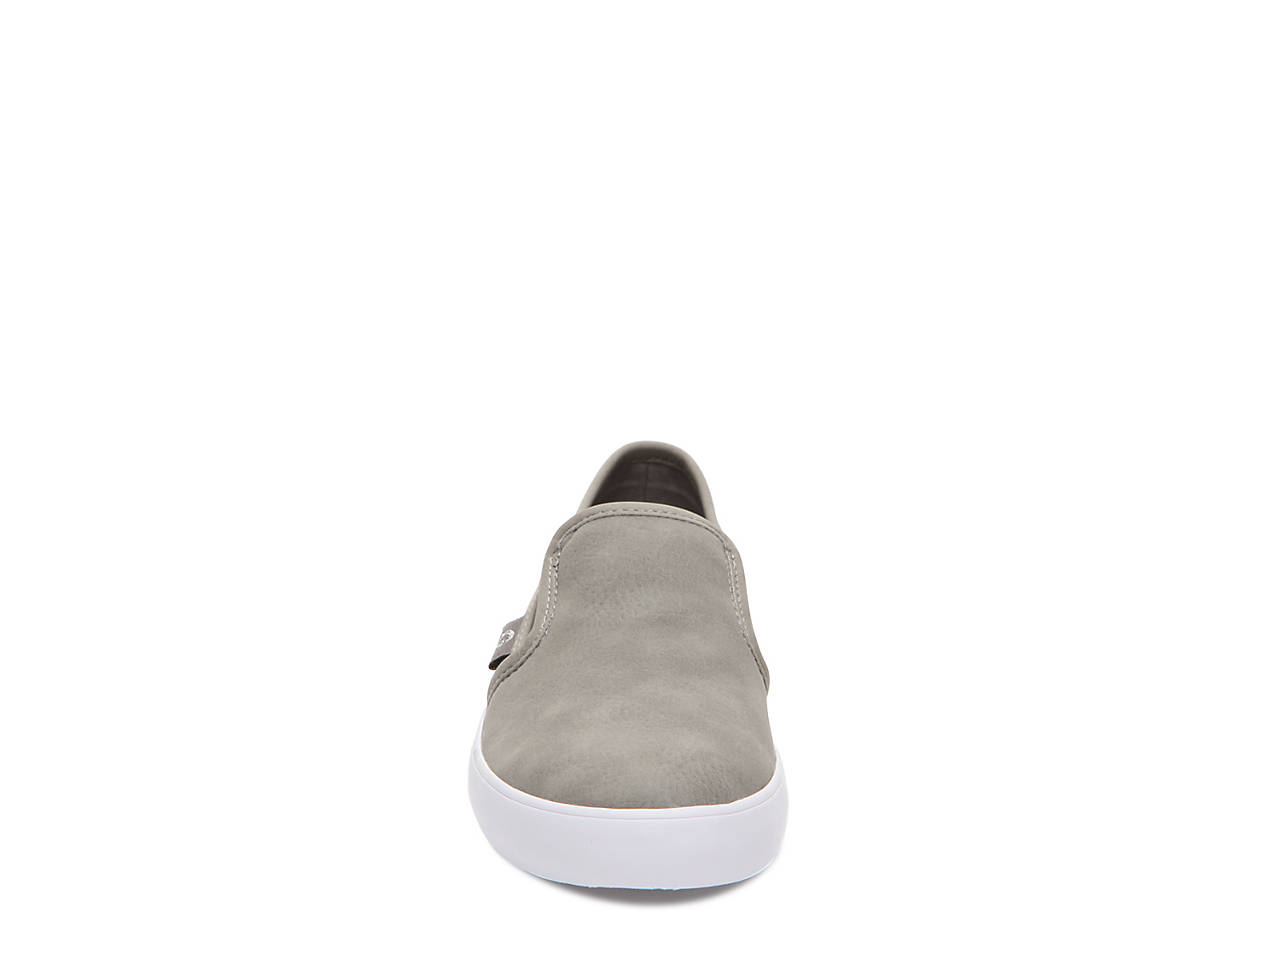 350ff4ca08c Home · Women s Shoes · Sneakers  Malden Slip-On Sneaker. previous